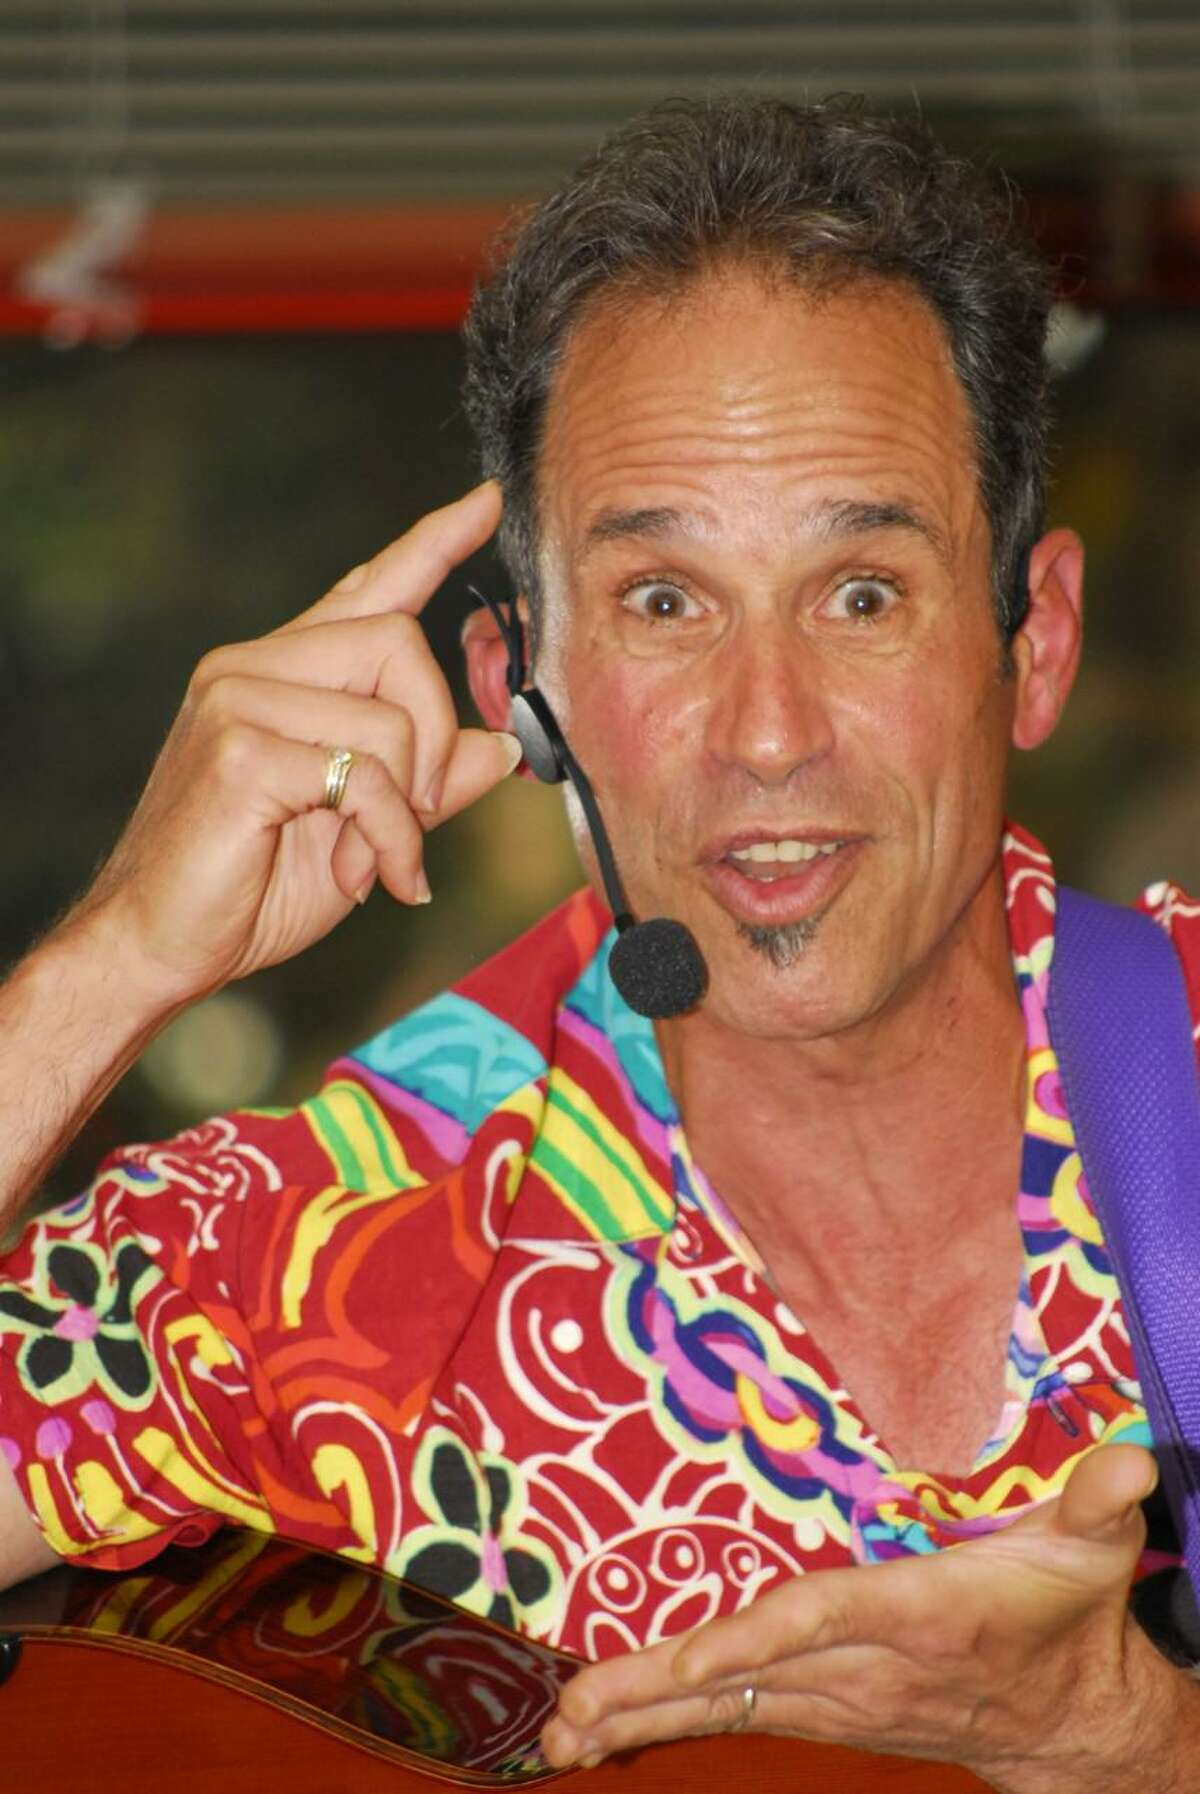 Children's musician Les Julian will be performing at the Shelton libraries' end of summer reading party.